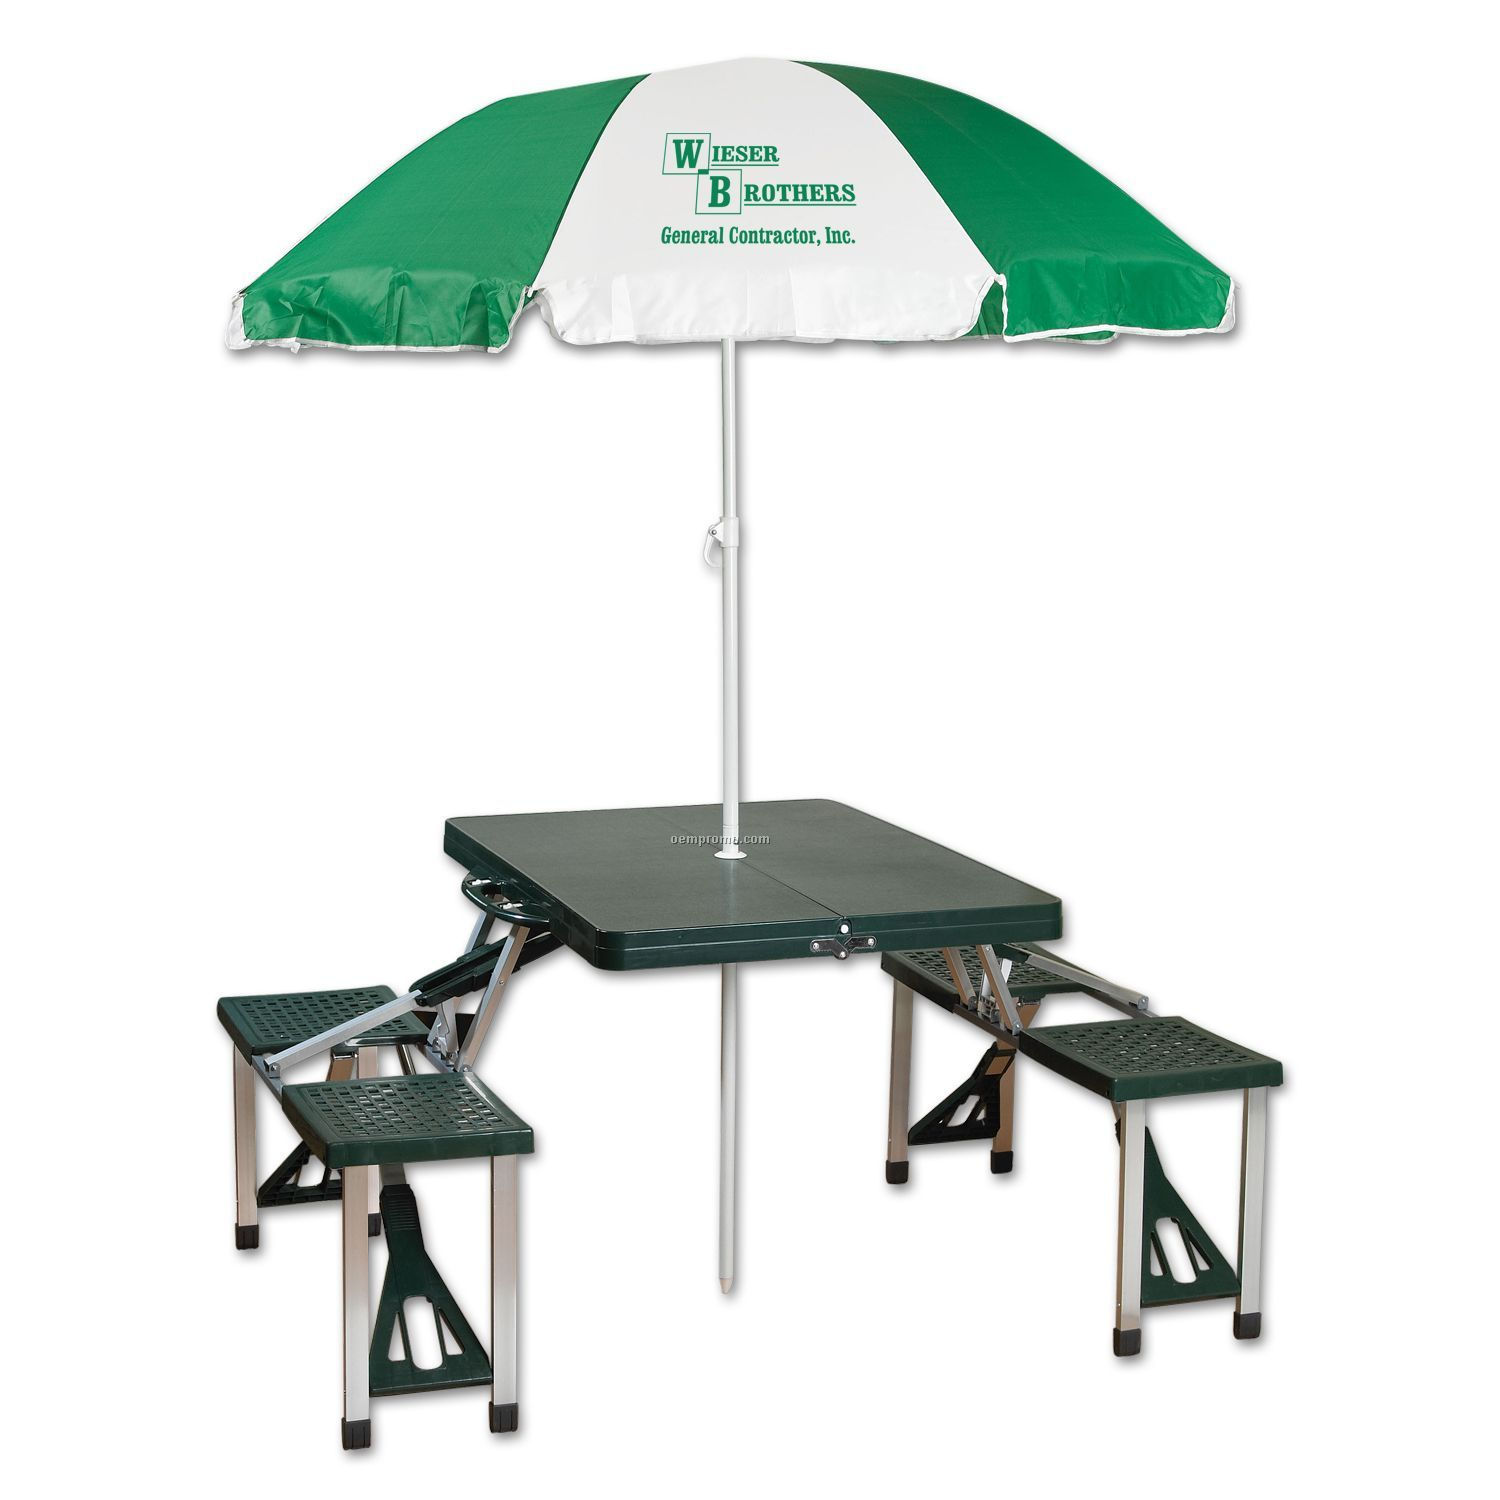 Umbrella For Picnic Table : Picnic Table And Umbrella Combo,China Wholesale Picnic Table And ...